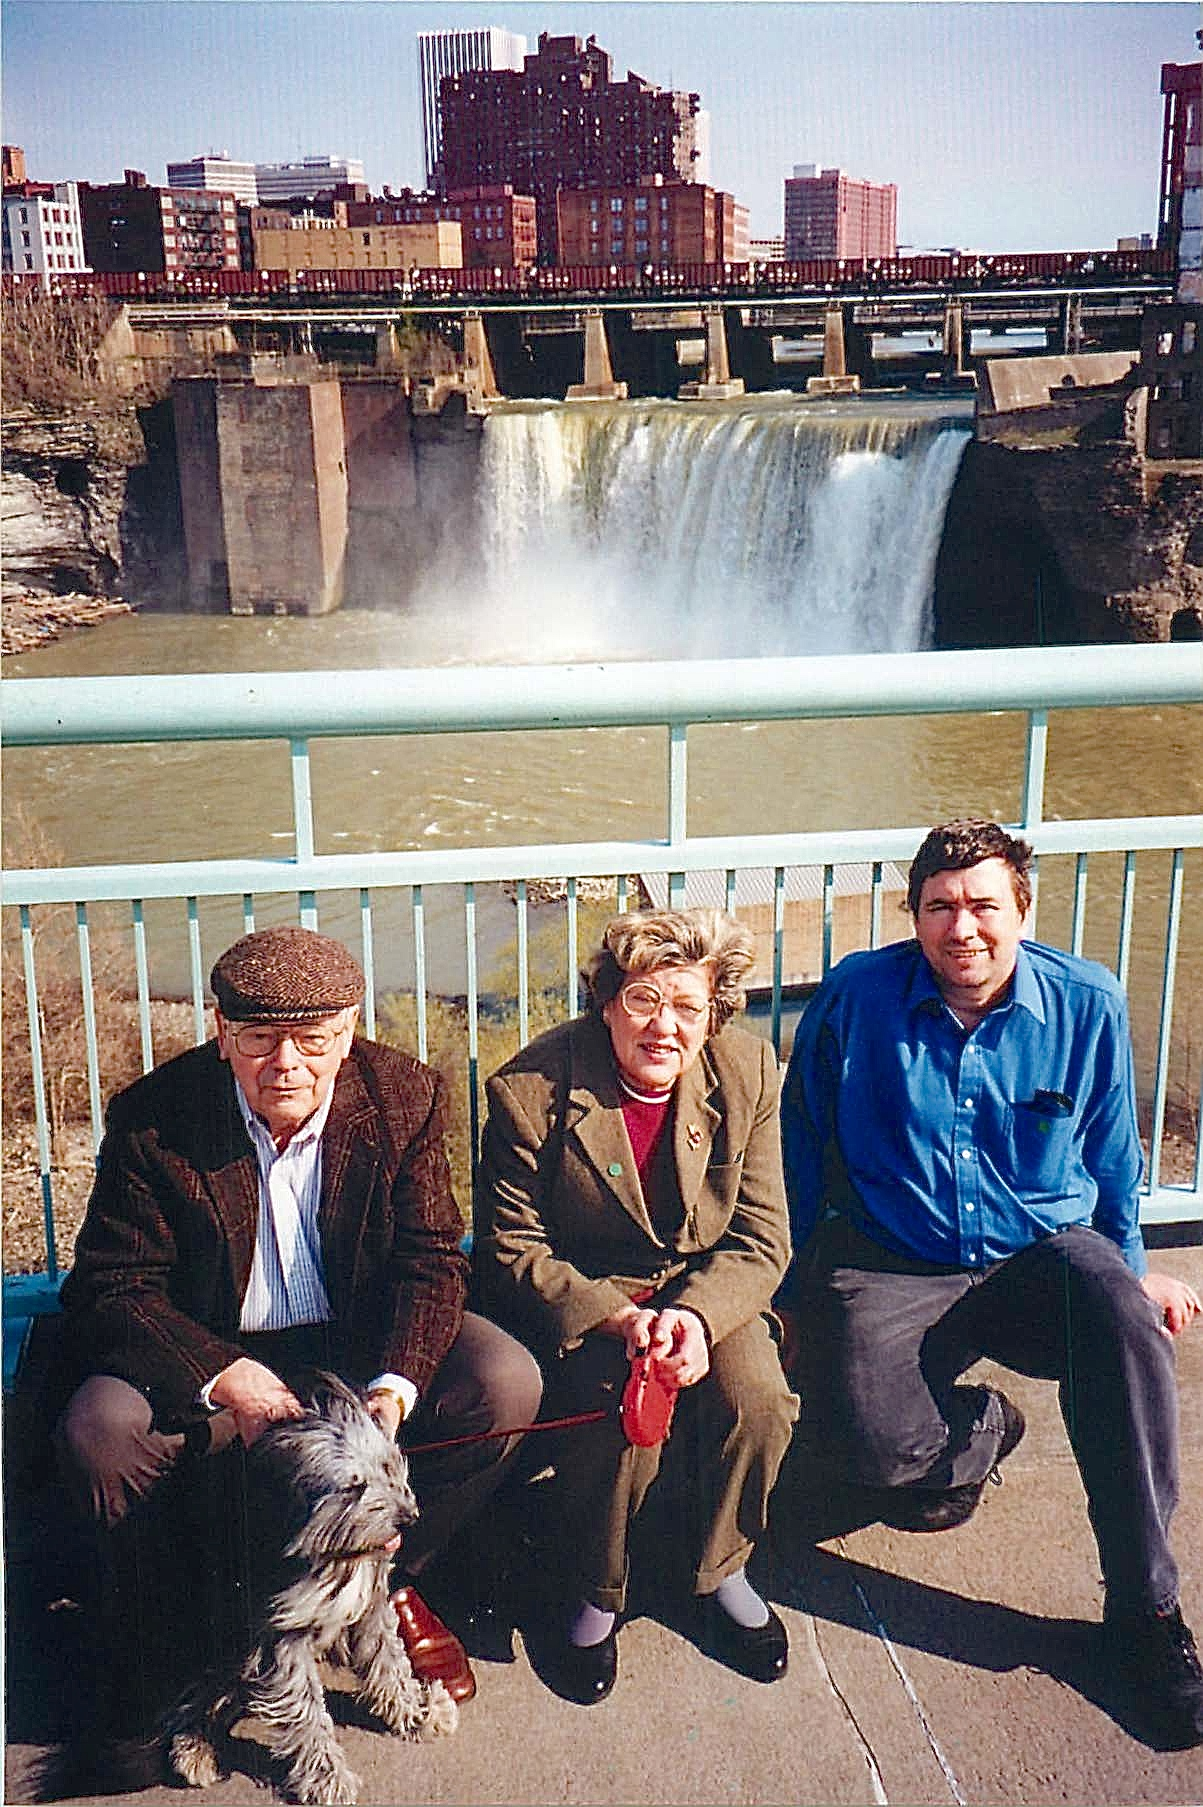 1998 Al, El, & John Rochester, NY in front of the falls!